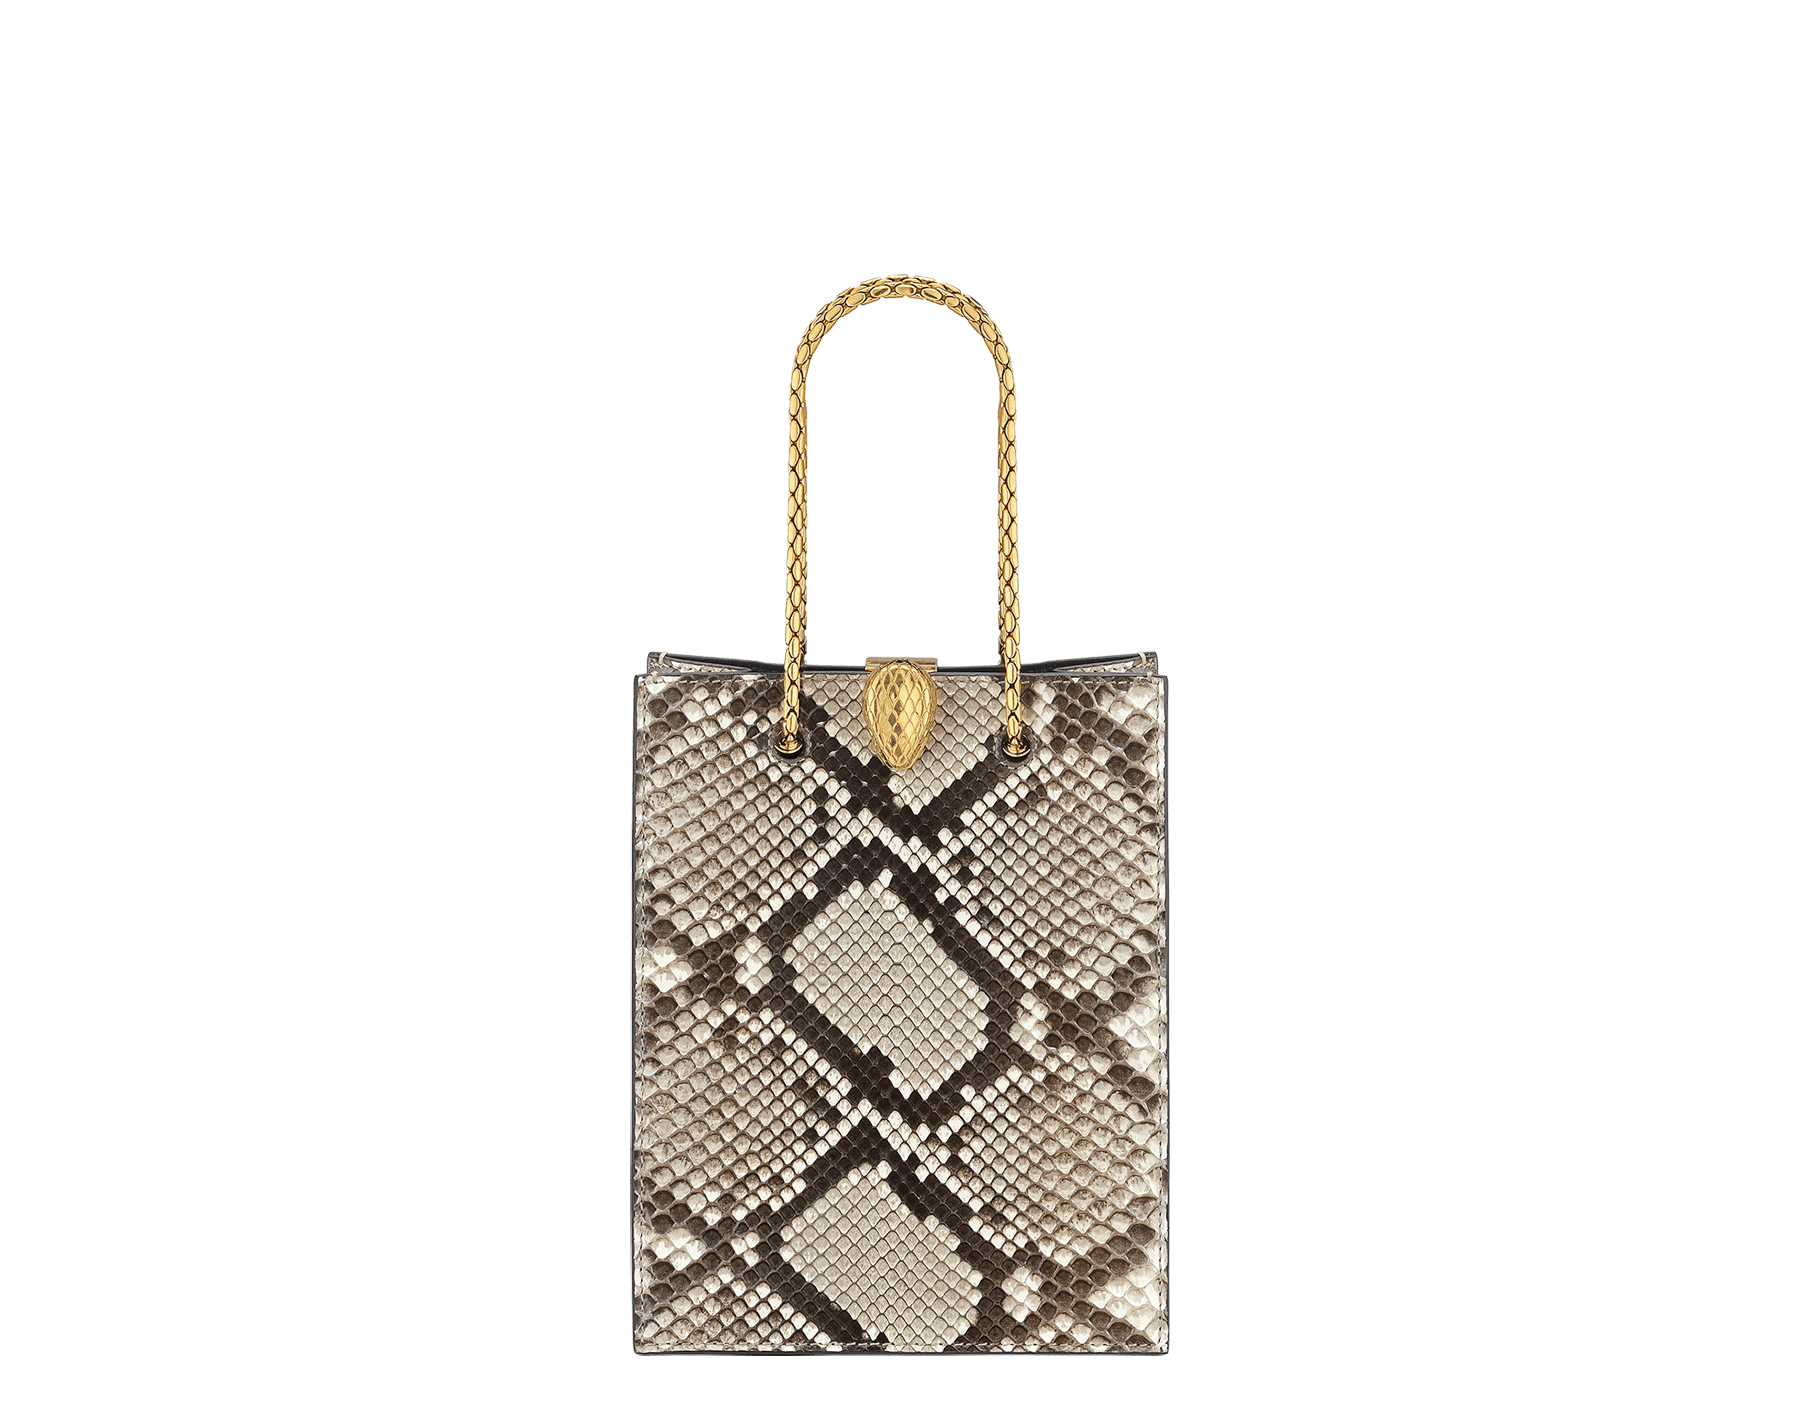 Alexander Wang x Bvlgari mini shopping tote bag in natural python skin and black calf leather. New Serpenti head closure in antique gold plated brass with tempting red enamel eyes. Limited edition. 288732 image 1